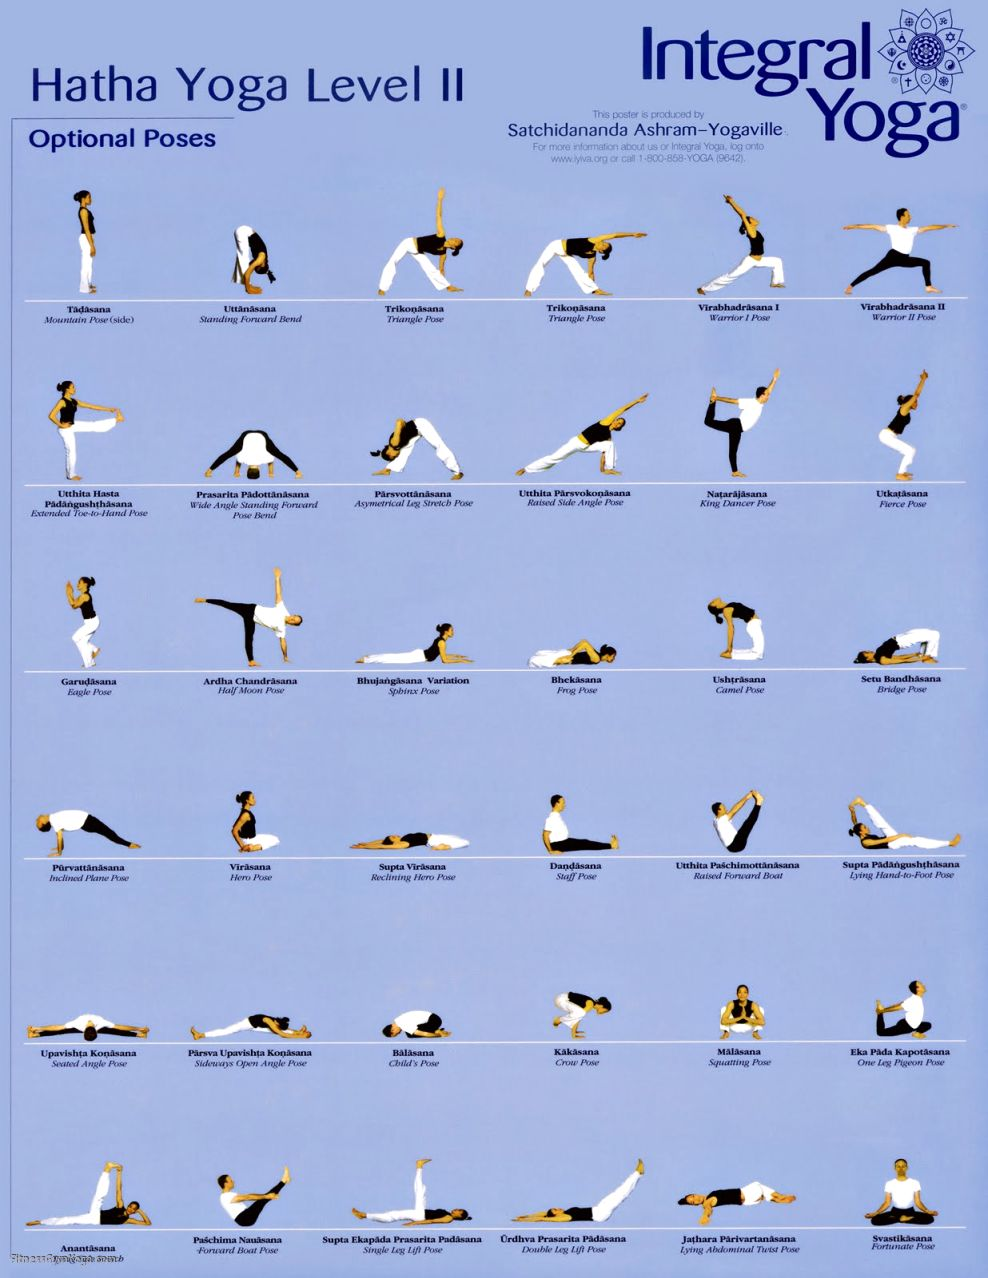 Yoga Hatha Poses | Work Out Picture Media